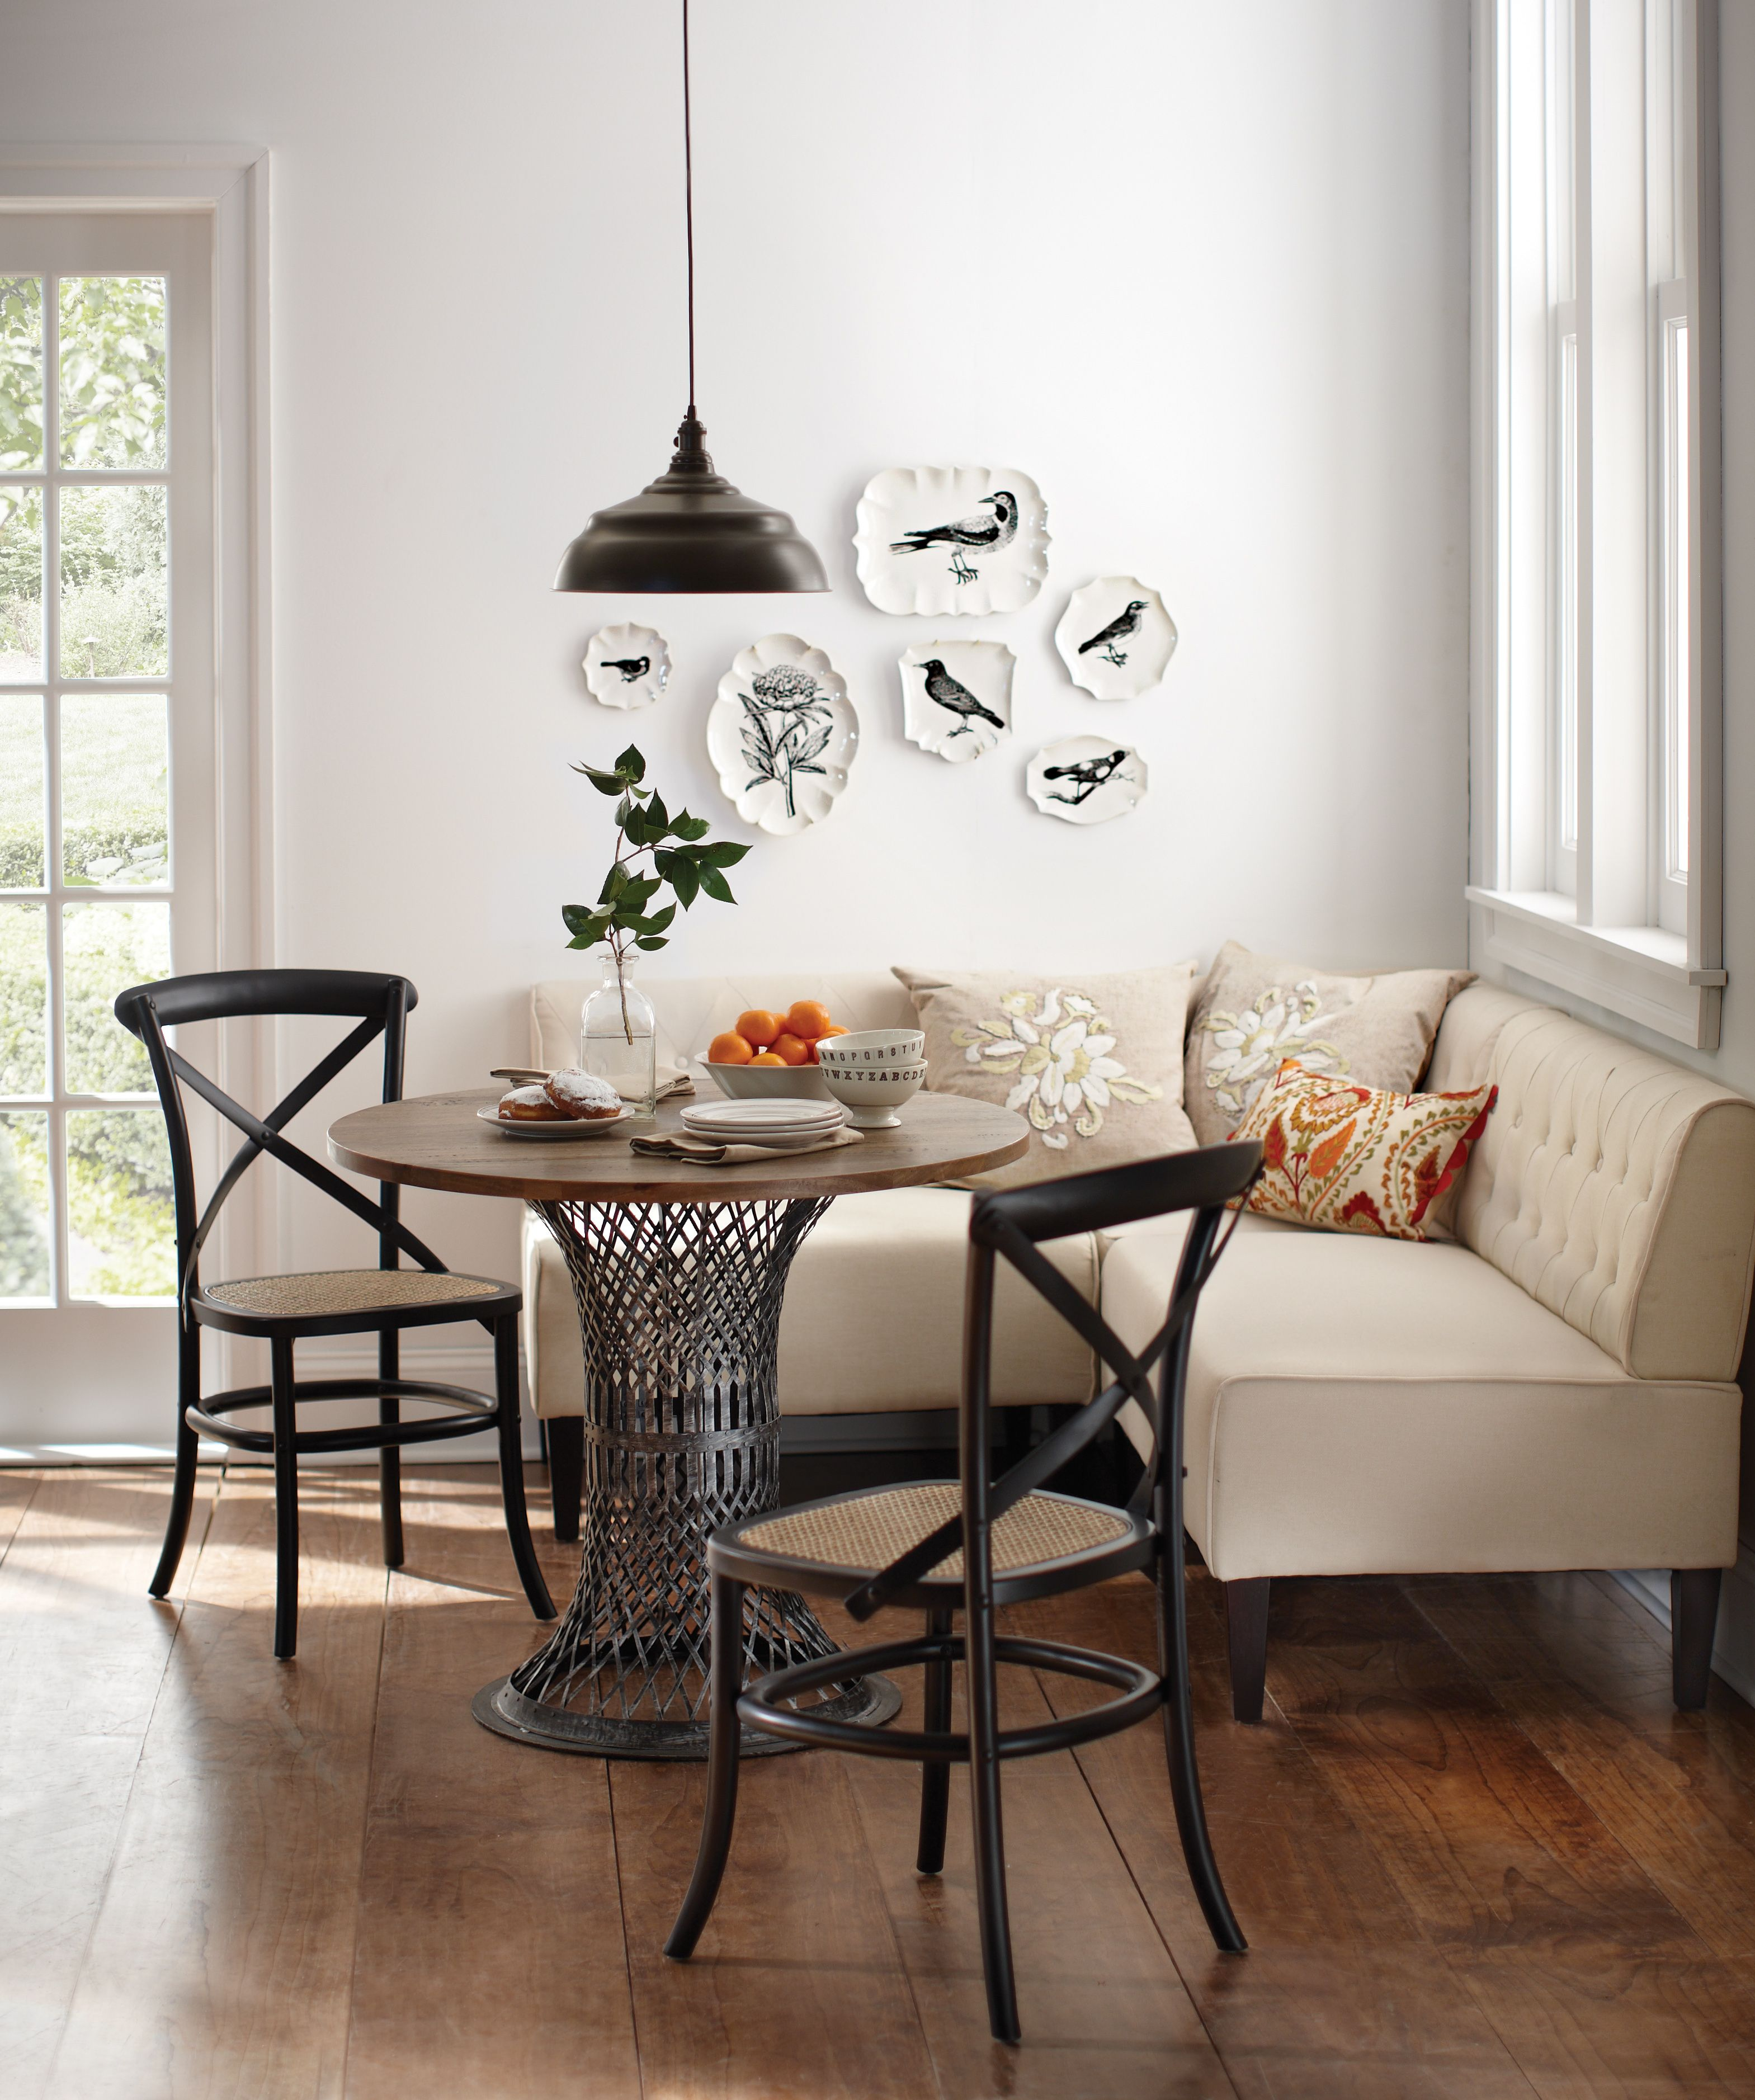 Make dining more comfy Our Easton Breakfast